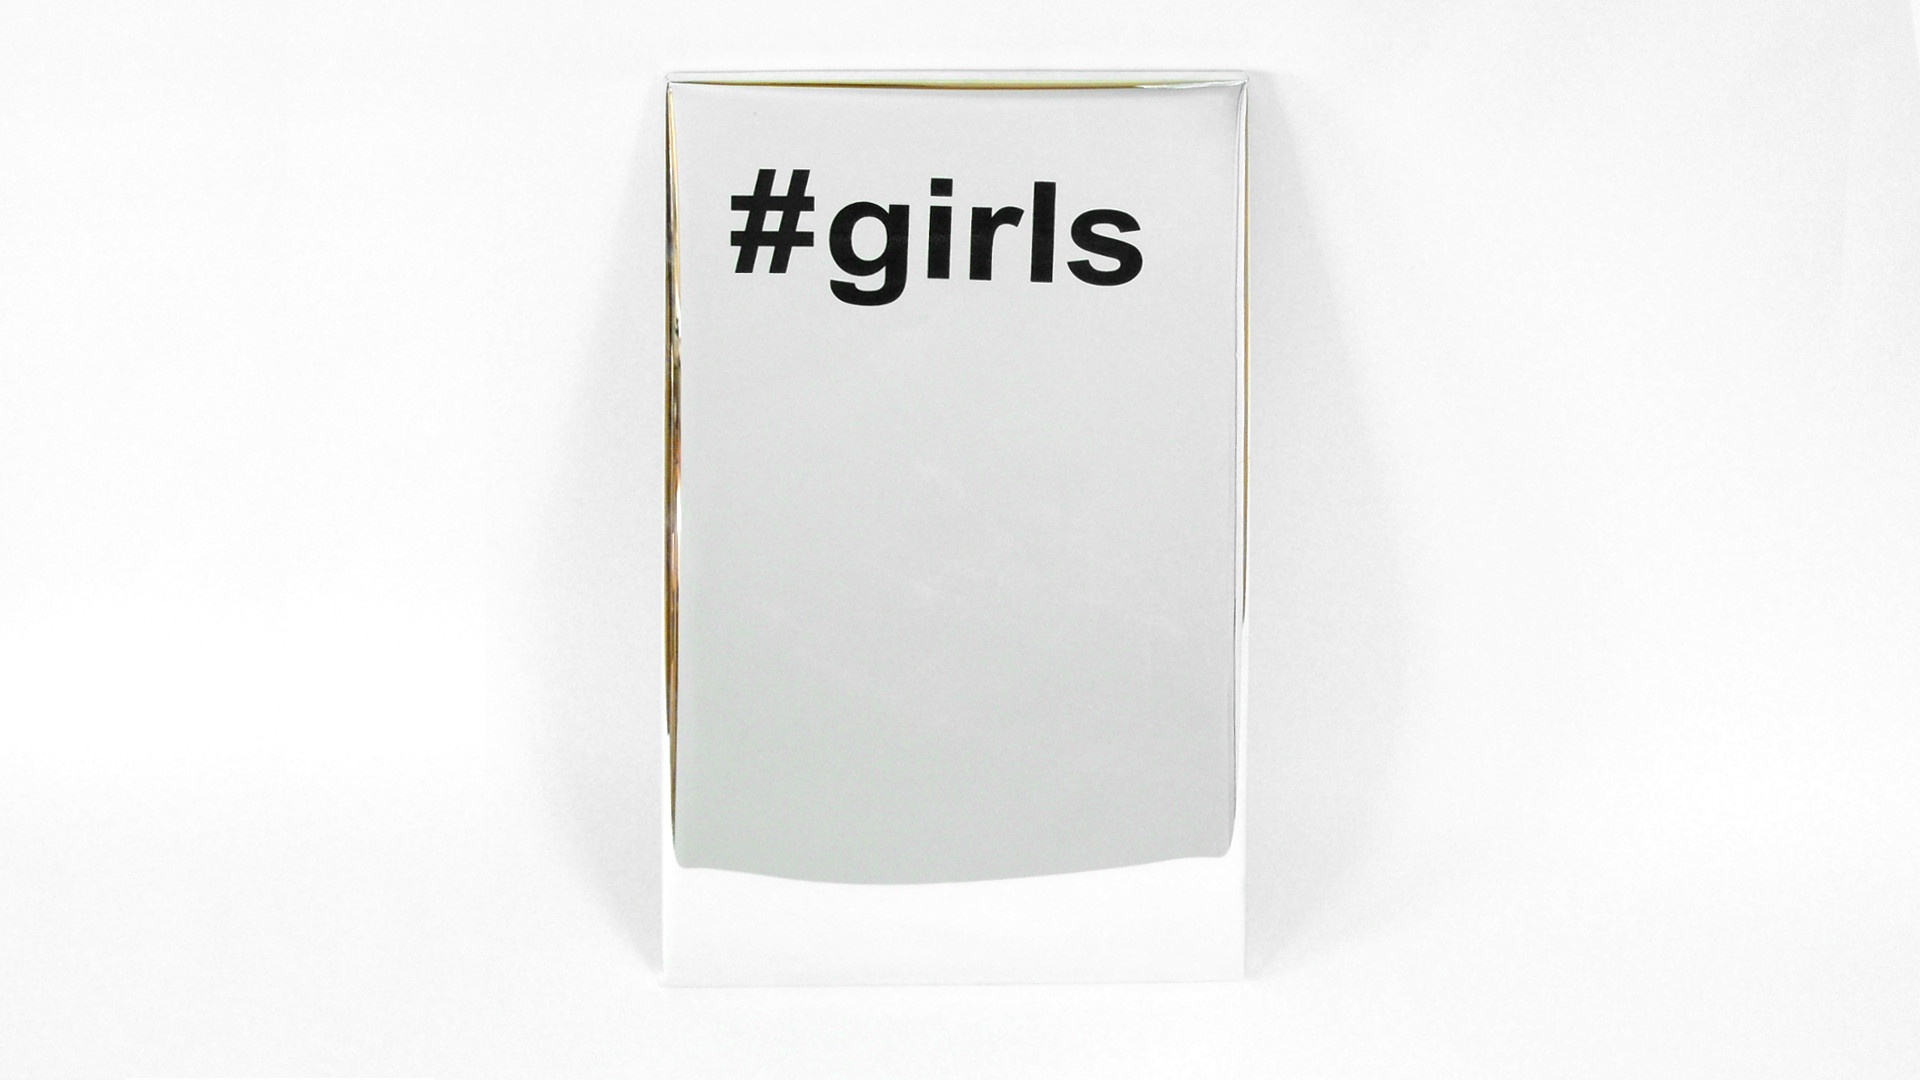 #girls, 2017, acrylic silkscreen on Mylar, Your Stories, solo show, 2017